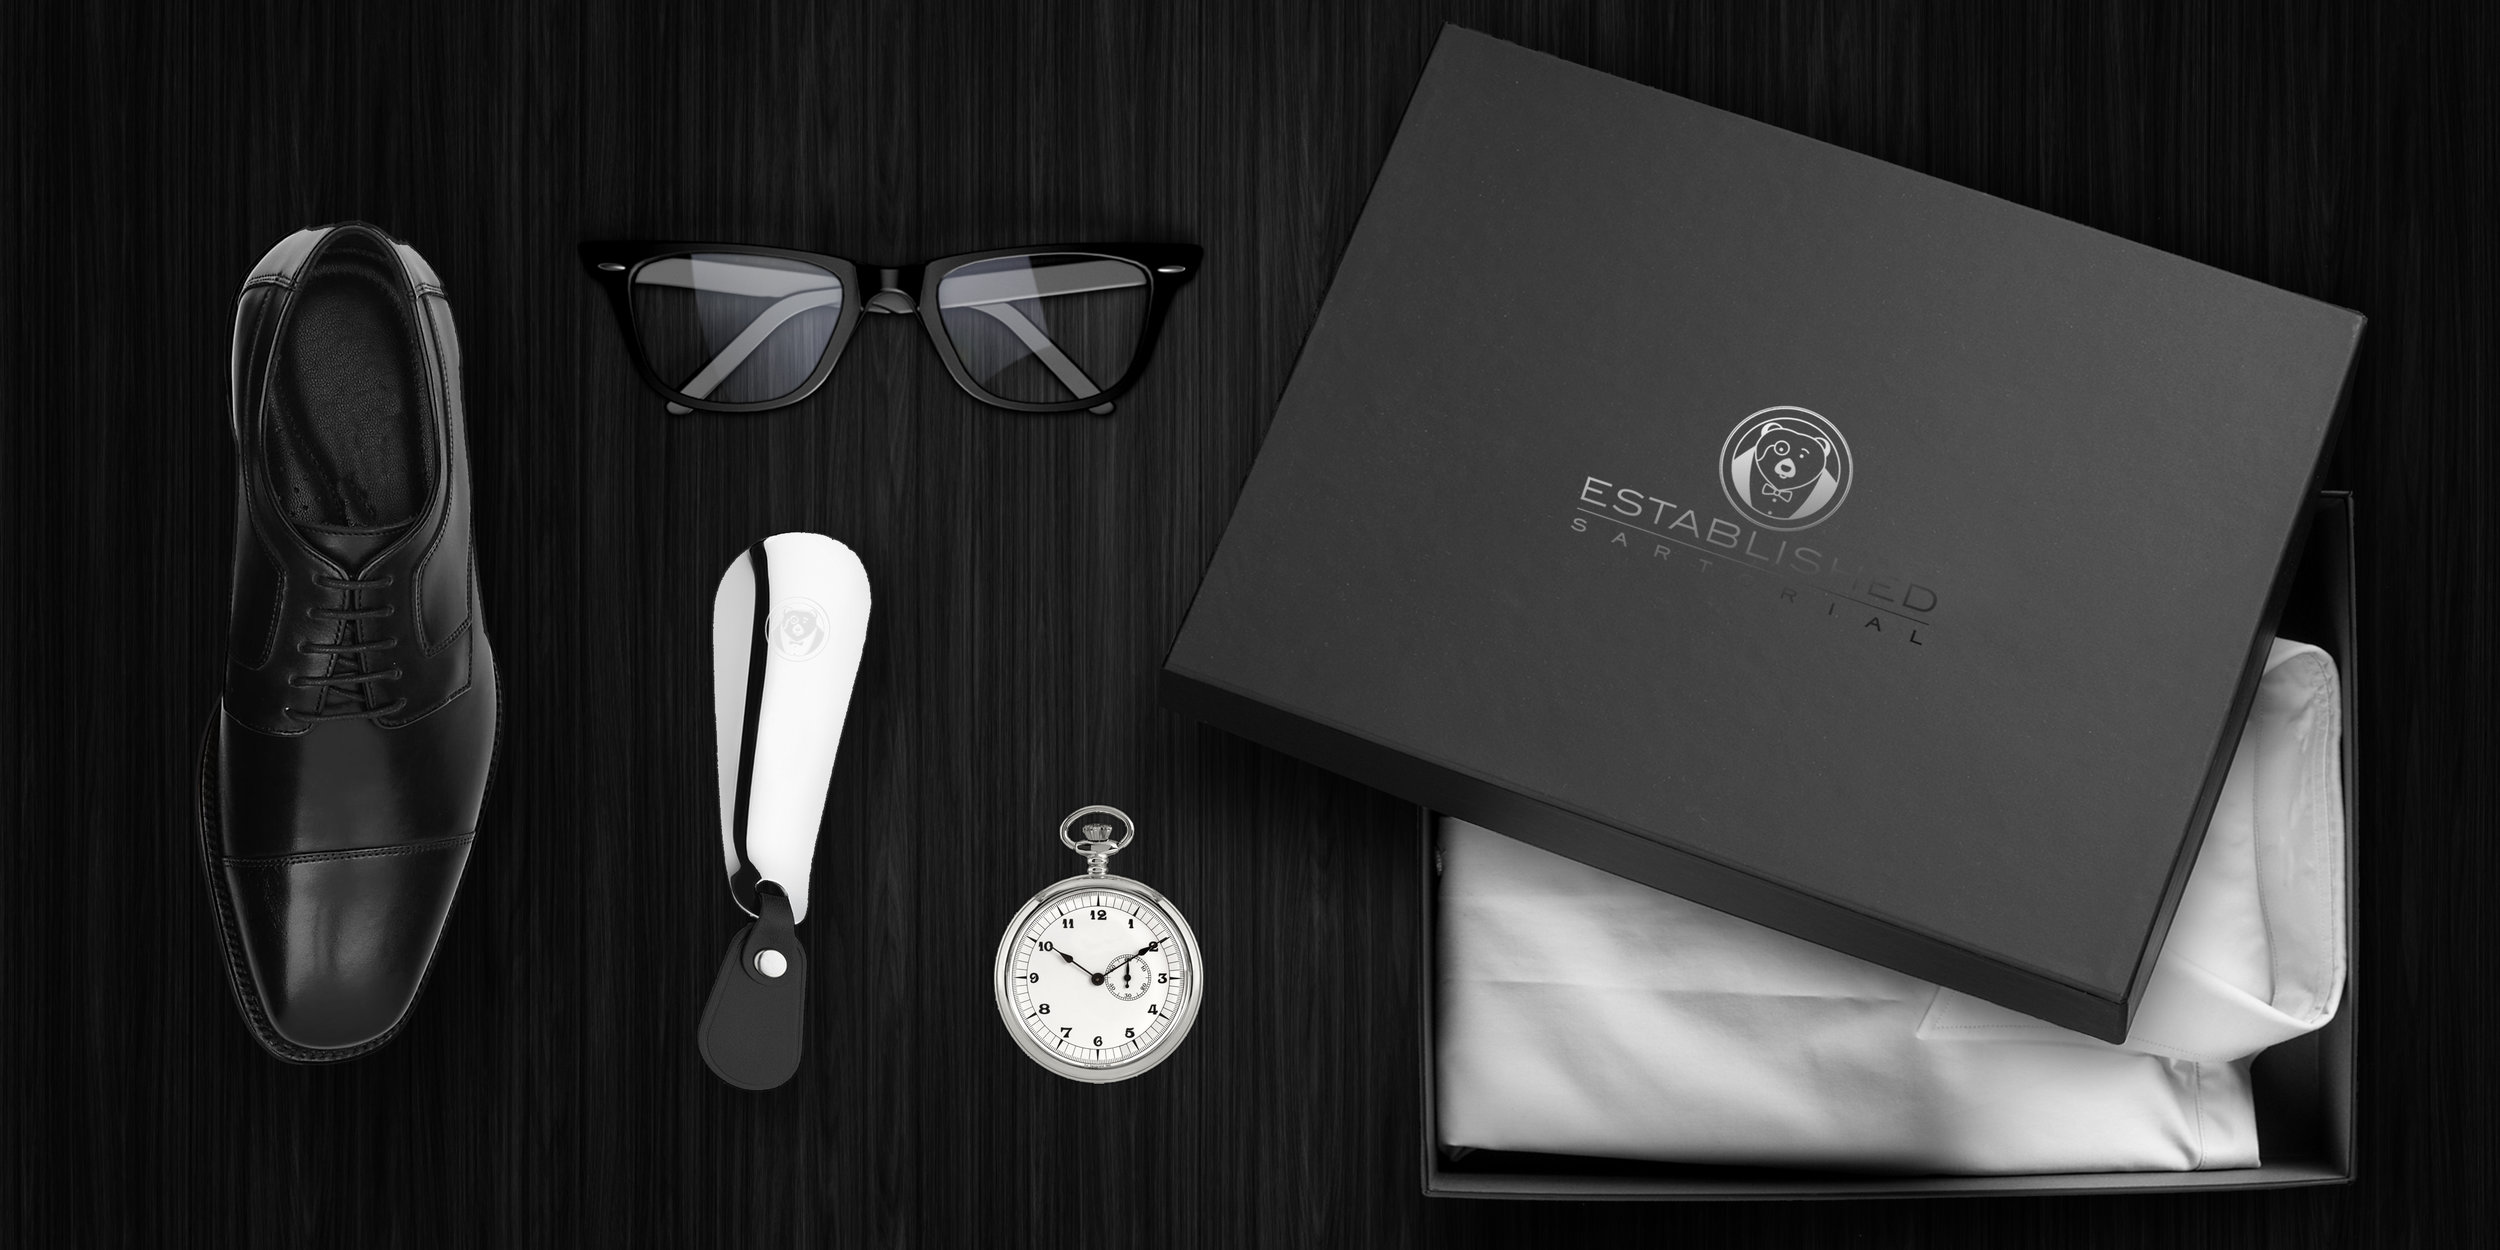 EST-identity-apparel-and-packaging-3.jpg